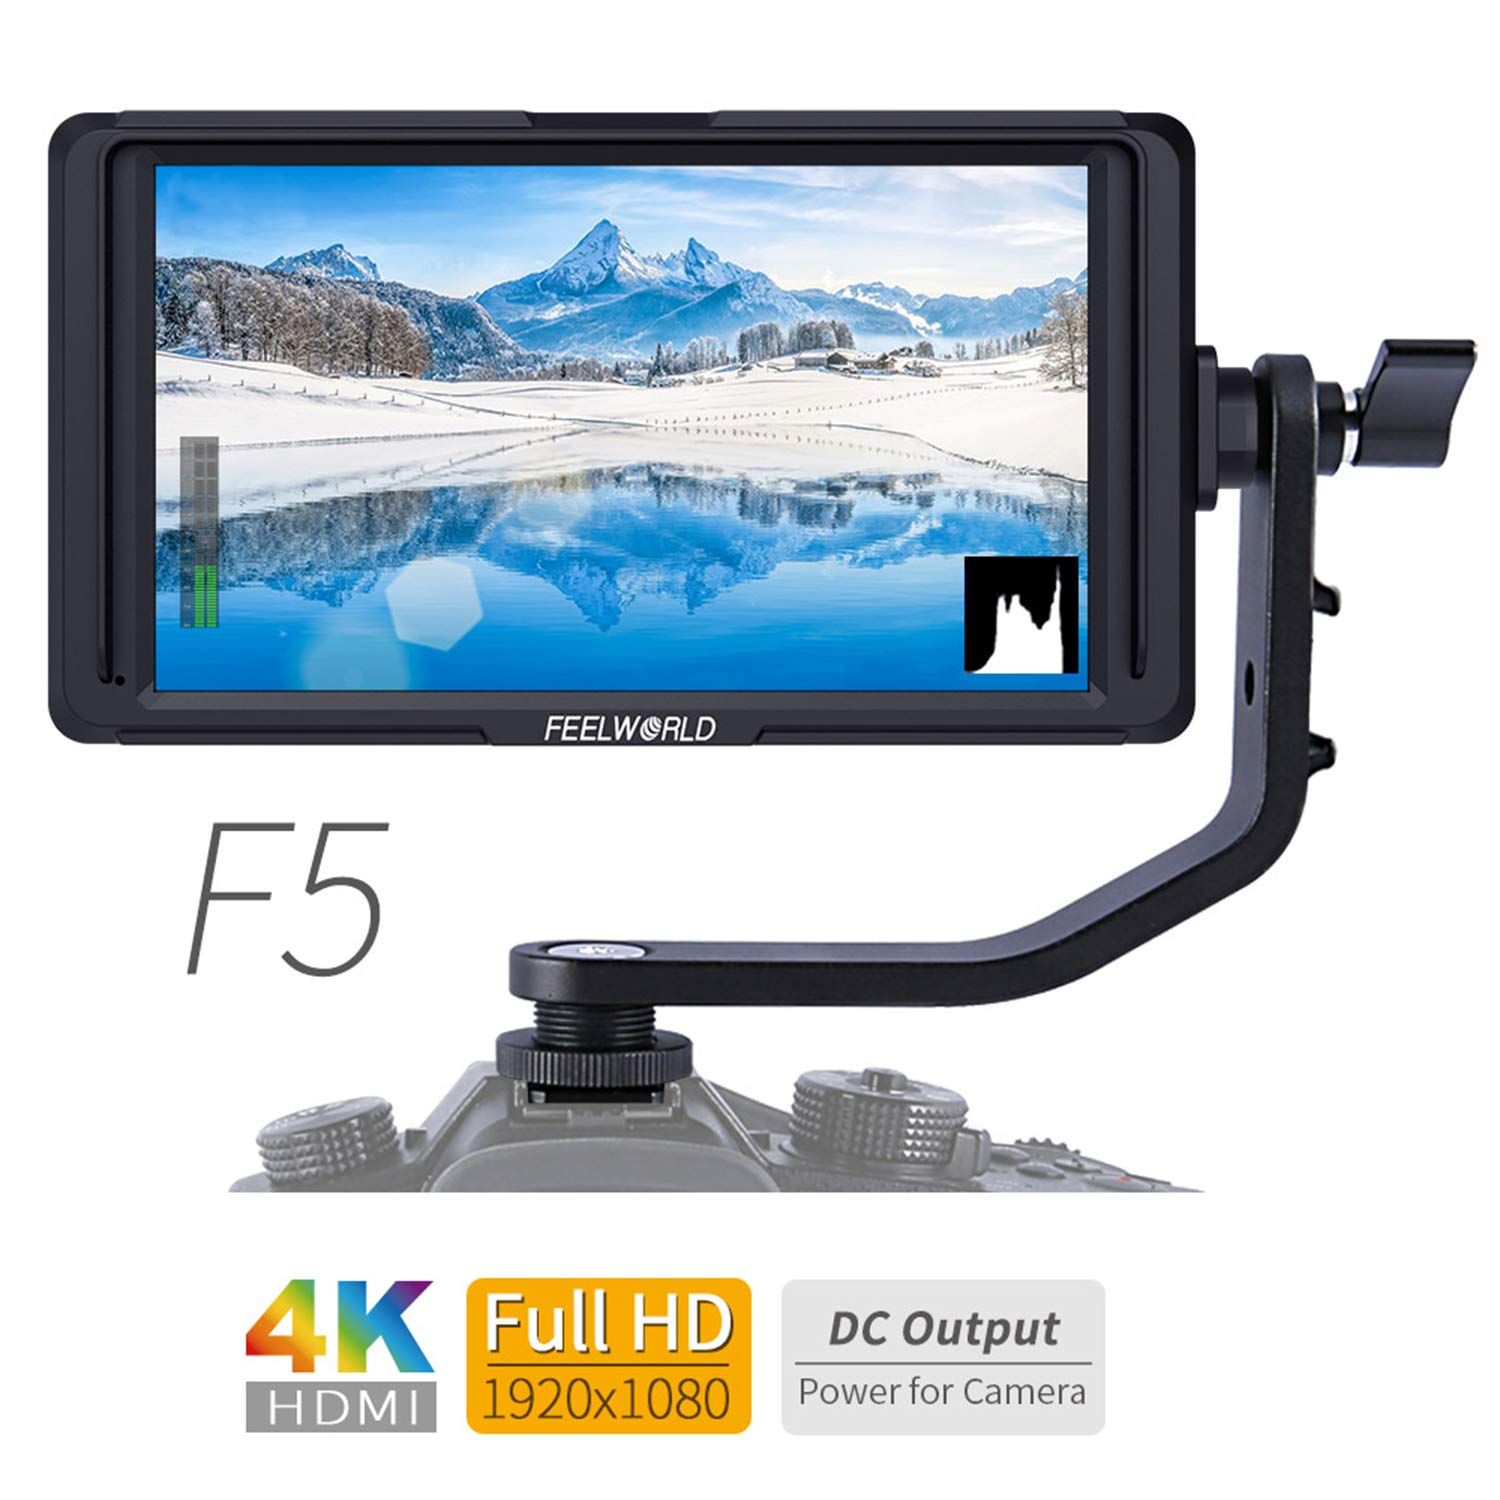 FEELWORLD F5 5 Inch 4K HDMI IPS 1920x1080 High Resolution On-Camera Field Monitor with Histogram, Focus Assist, False Color, Zebra Exposure, Check Field, Pixel to Pixel for DSLR Camera by FEELWORLD